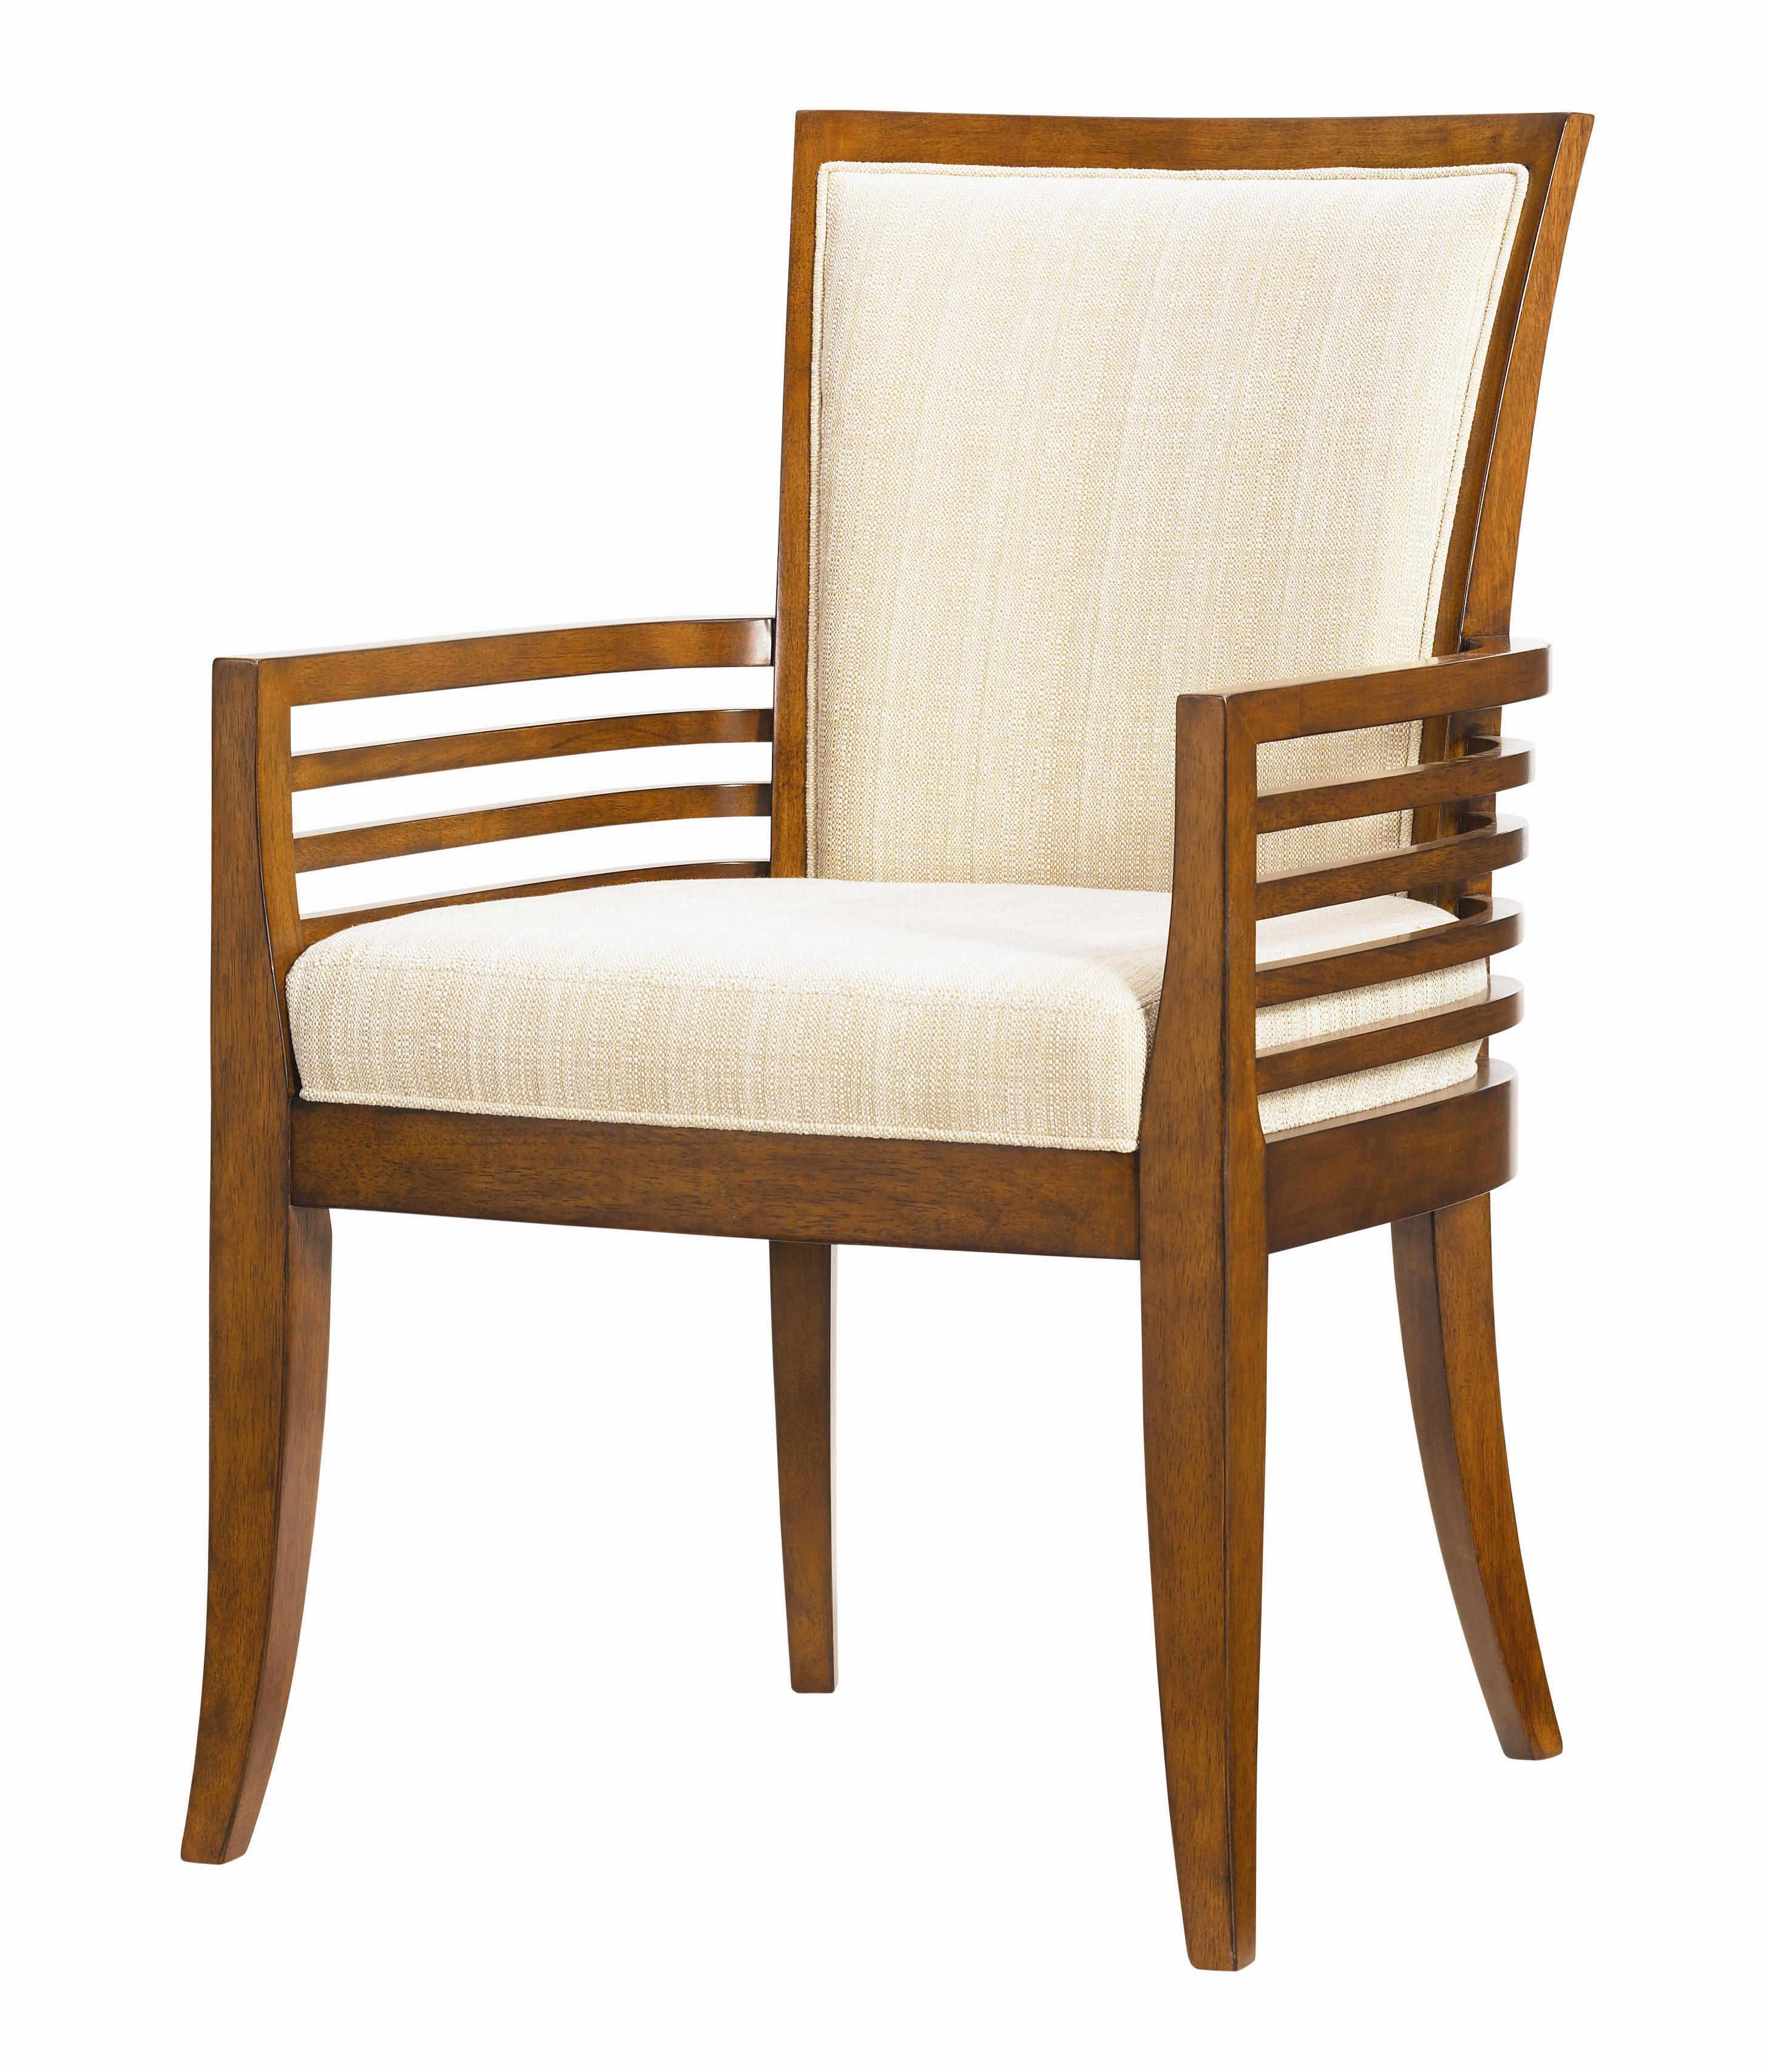 Ocean Club <b>Customizable</b> Kowloon Arm Chair by Tommy Bahama Home at Baer's Furniture